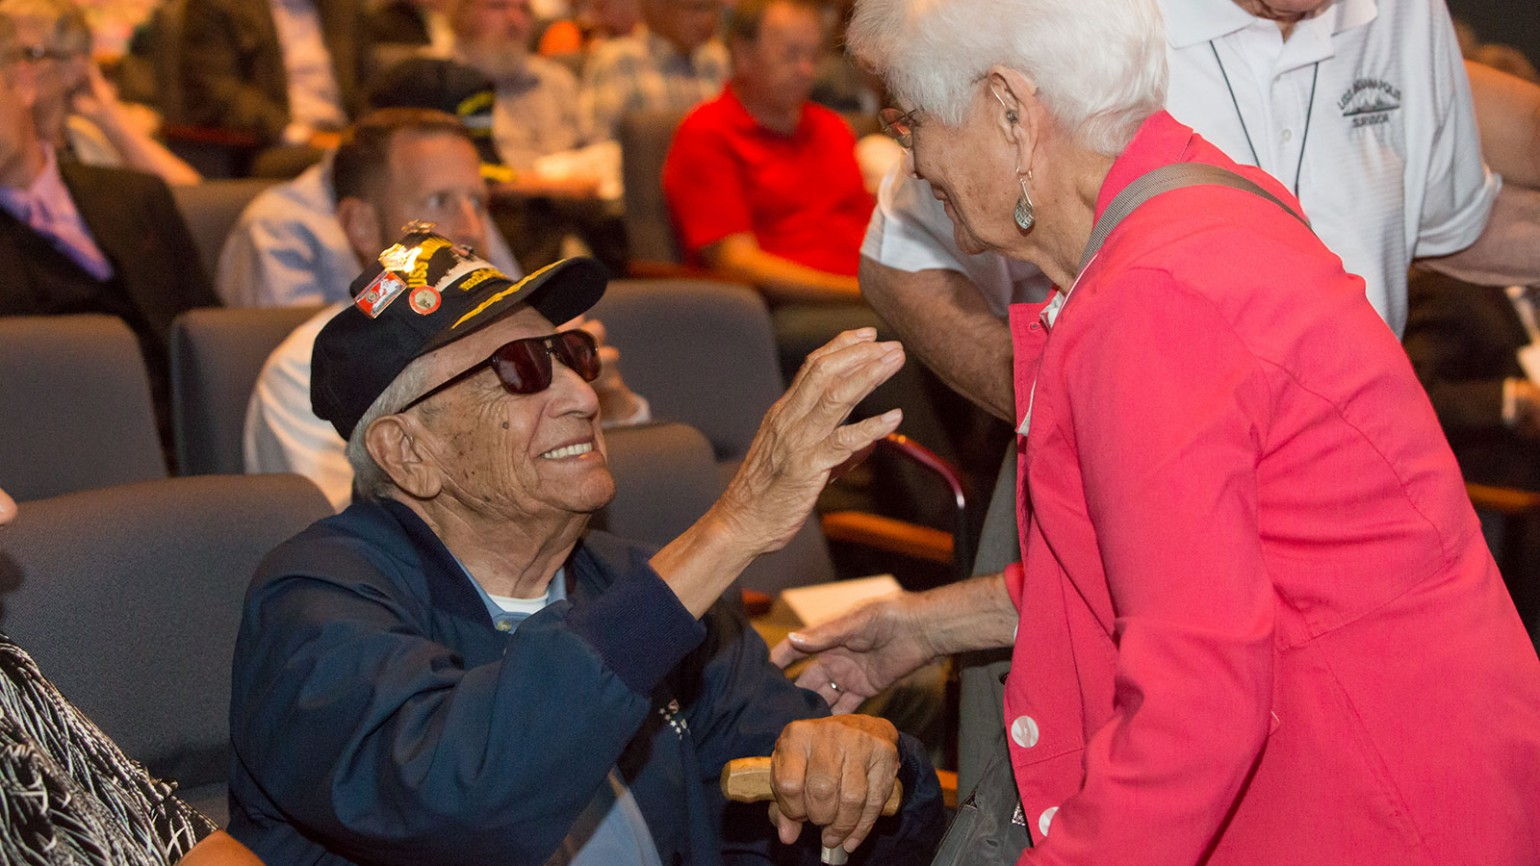 USS Indianapolis survivor, Al Celaya, pictured.